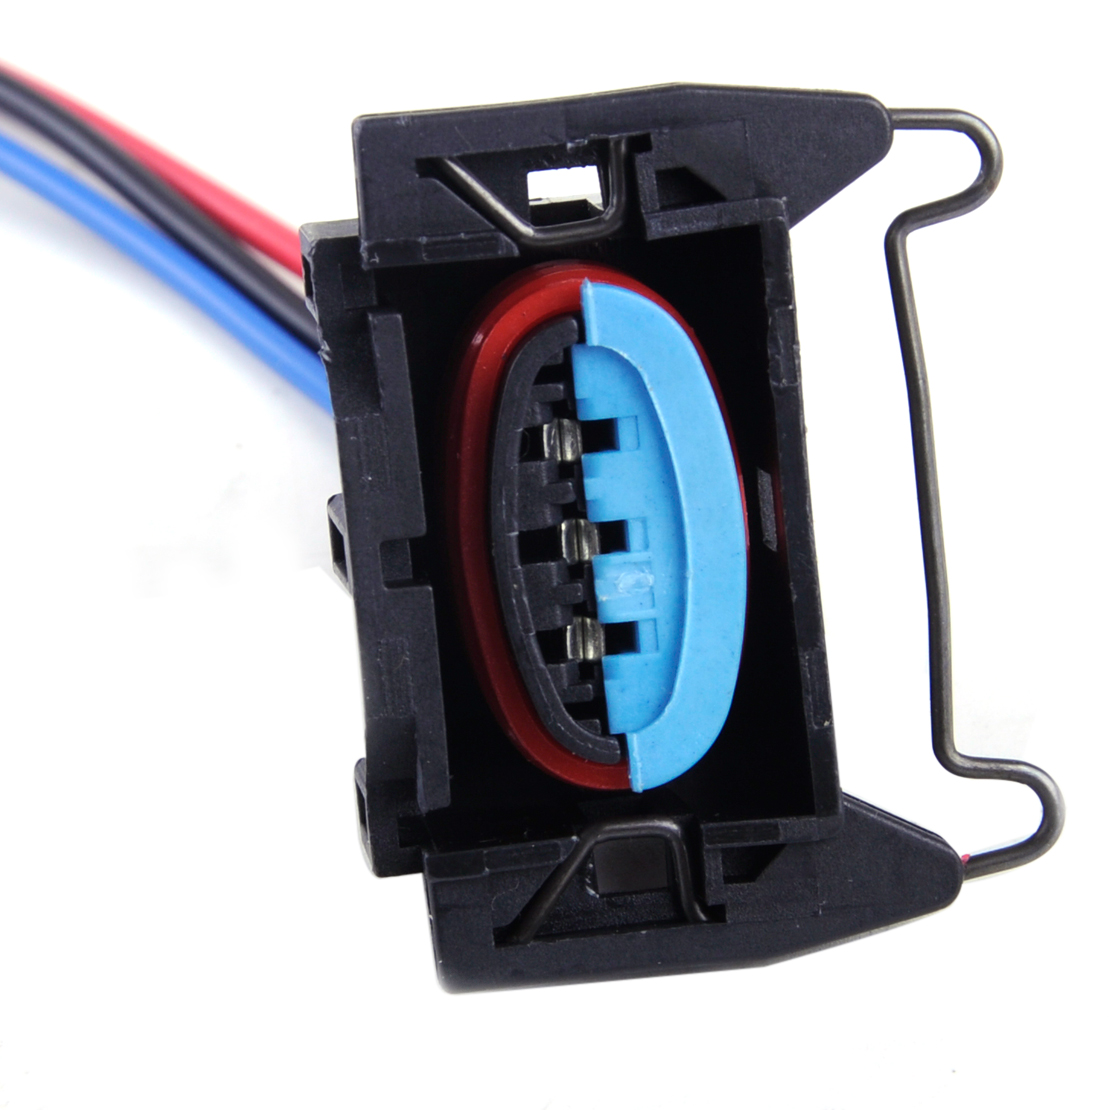 medium resolution of dwcx ignition coil pack wiring harness connector fit for ford mazda mercury 645 302 3u2z14s411tna 1p1727 57 5508 in ignition coil from automobiles